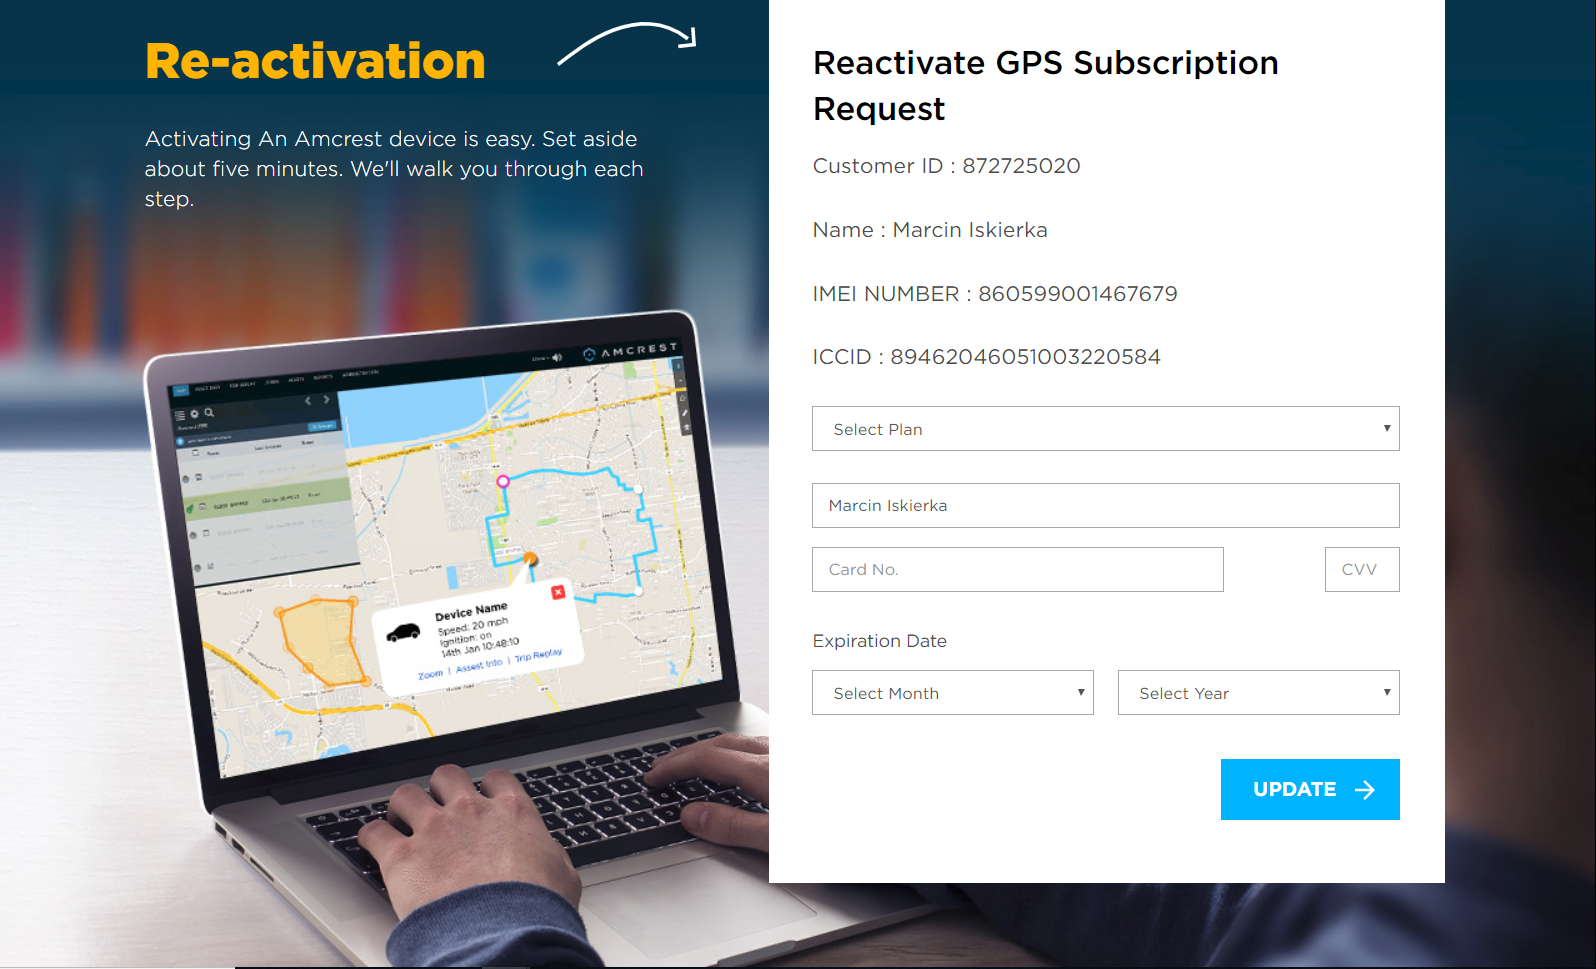 How To Reactivate Your GPS – Amcrest